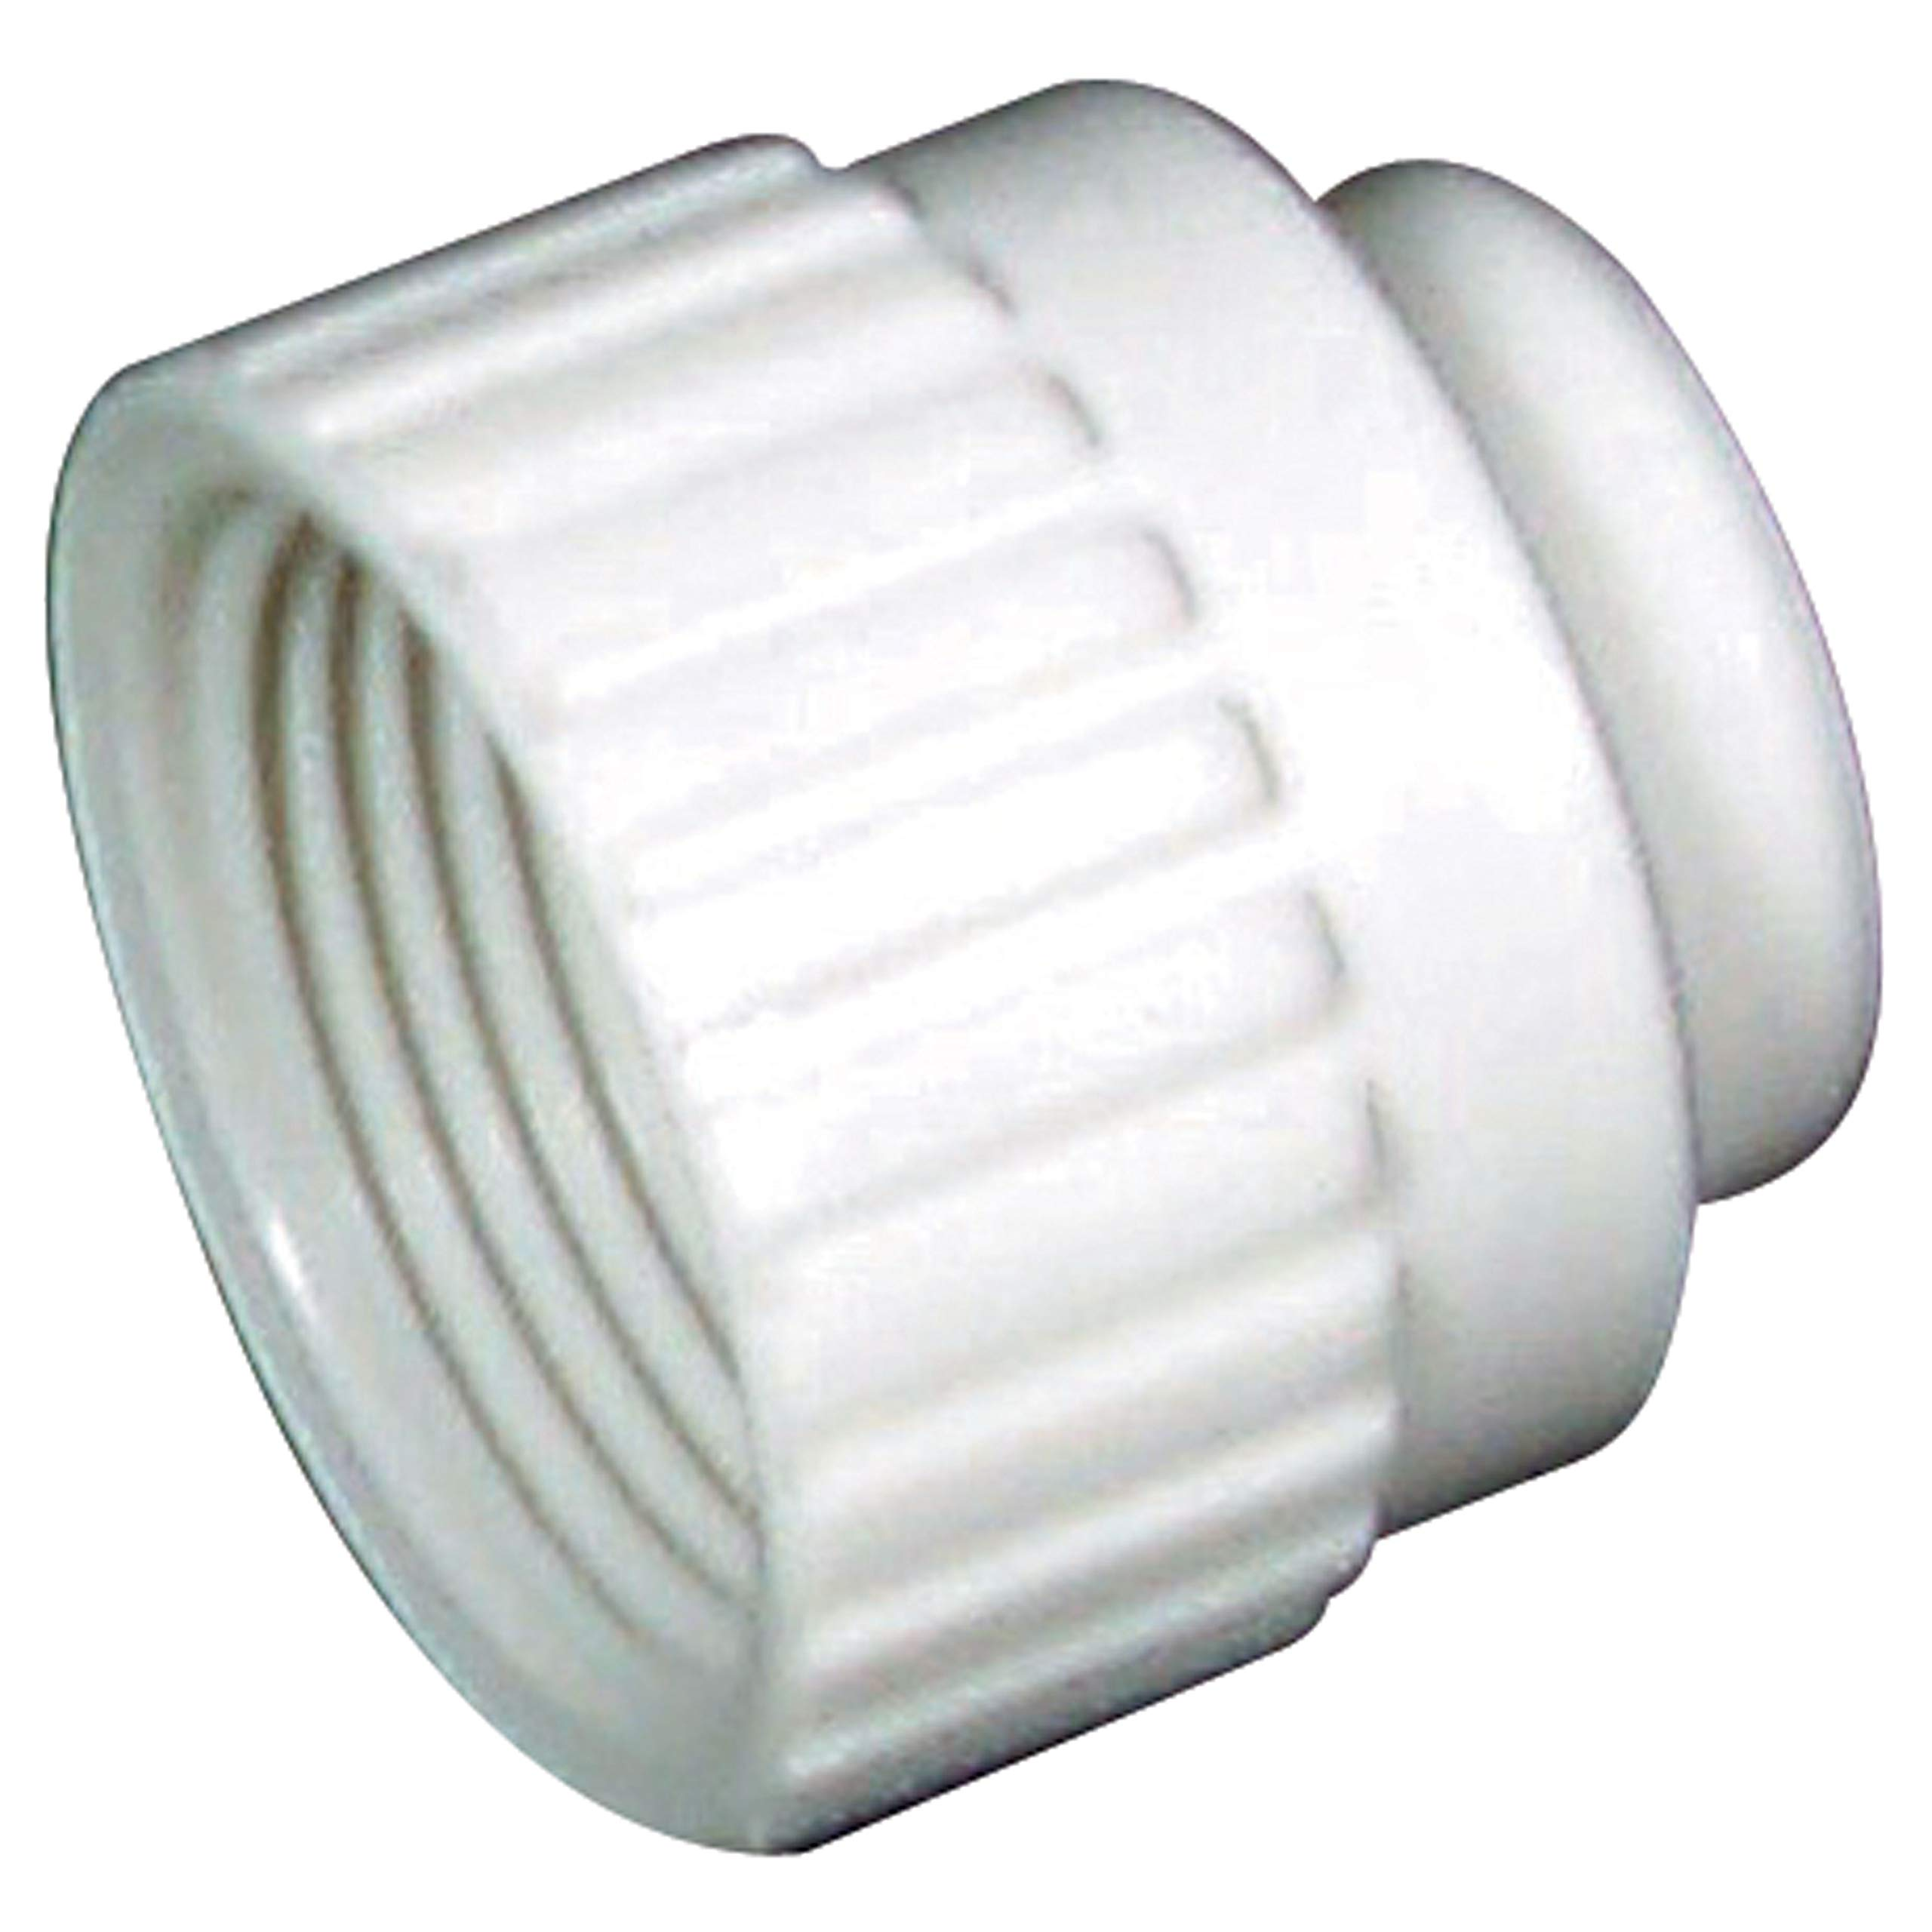 Flair-It 16860 Plastic Cap Fitting, 0.5'' Size